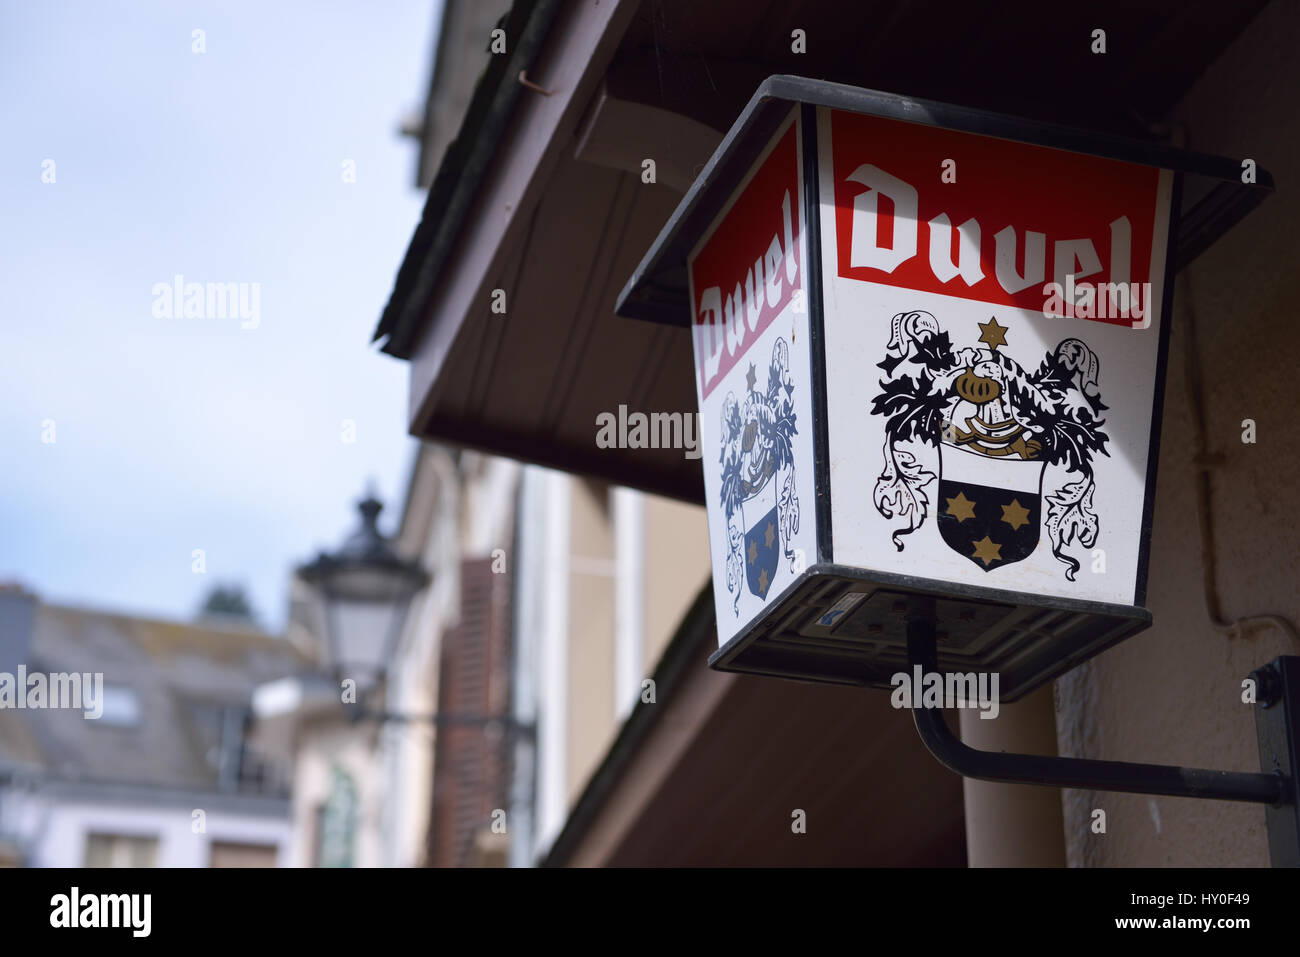 Advertisement lantern with logos of famous beer Duvel on the